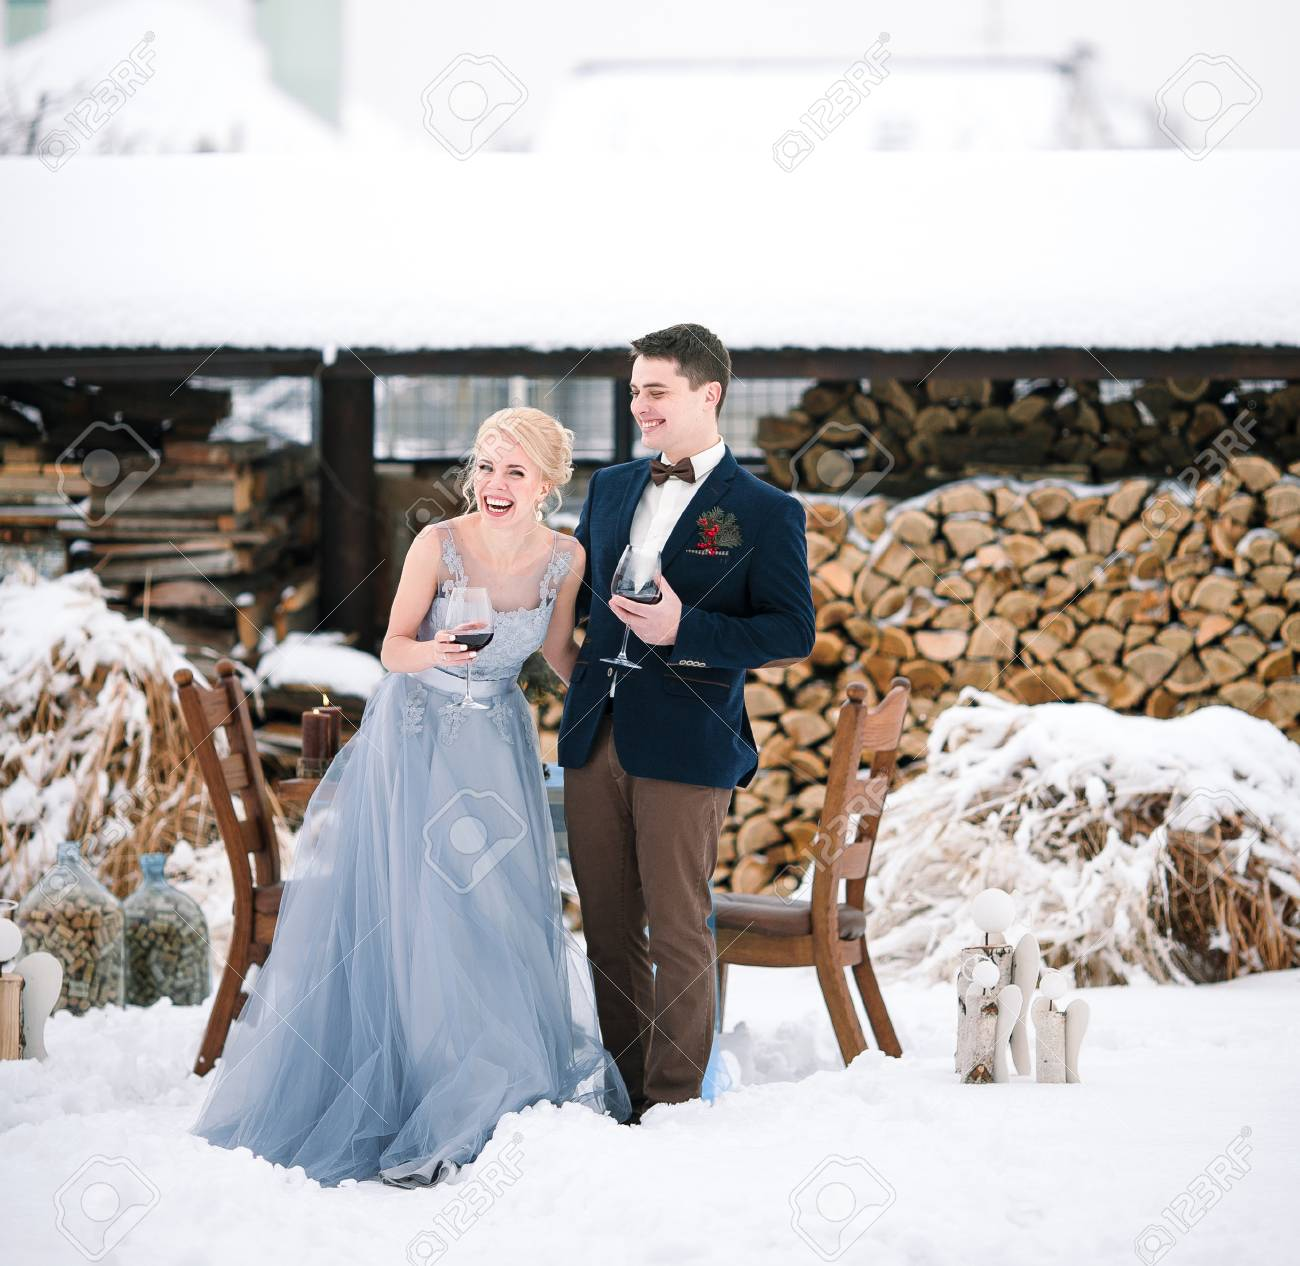 Winter Wedding Outdoor On Snow And Firewood Background Bride